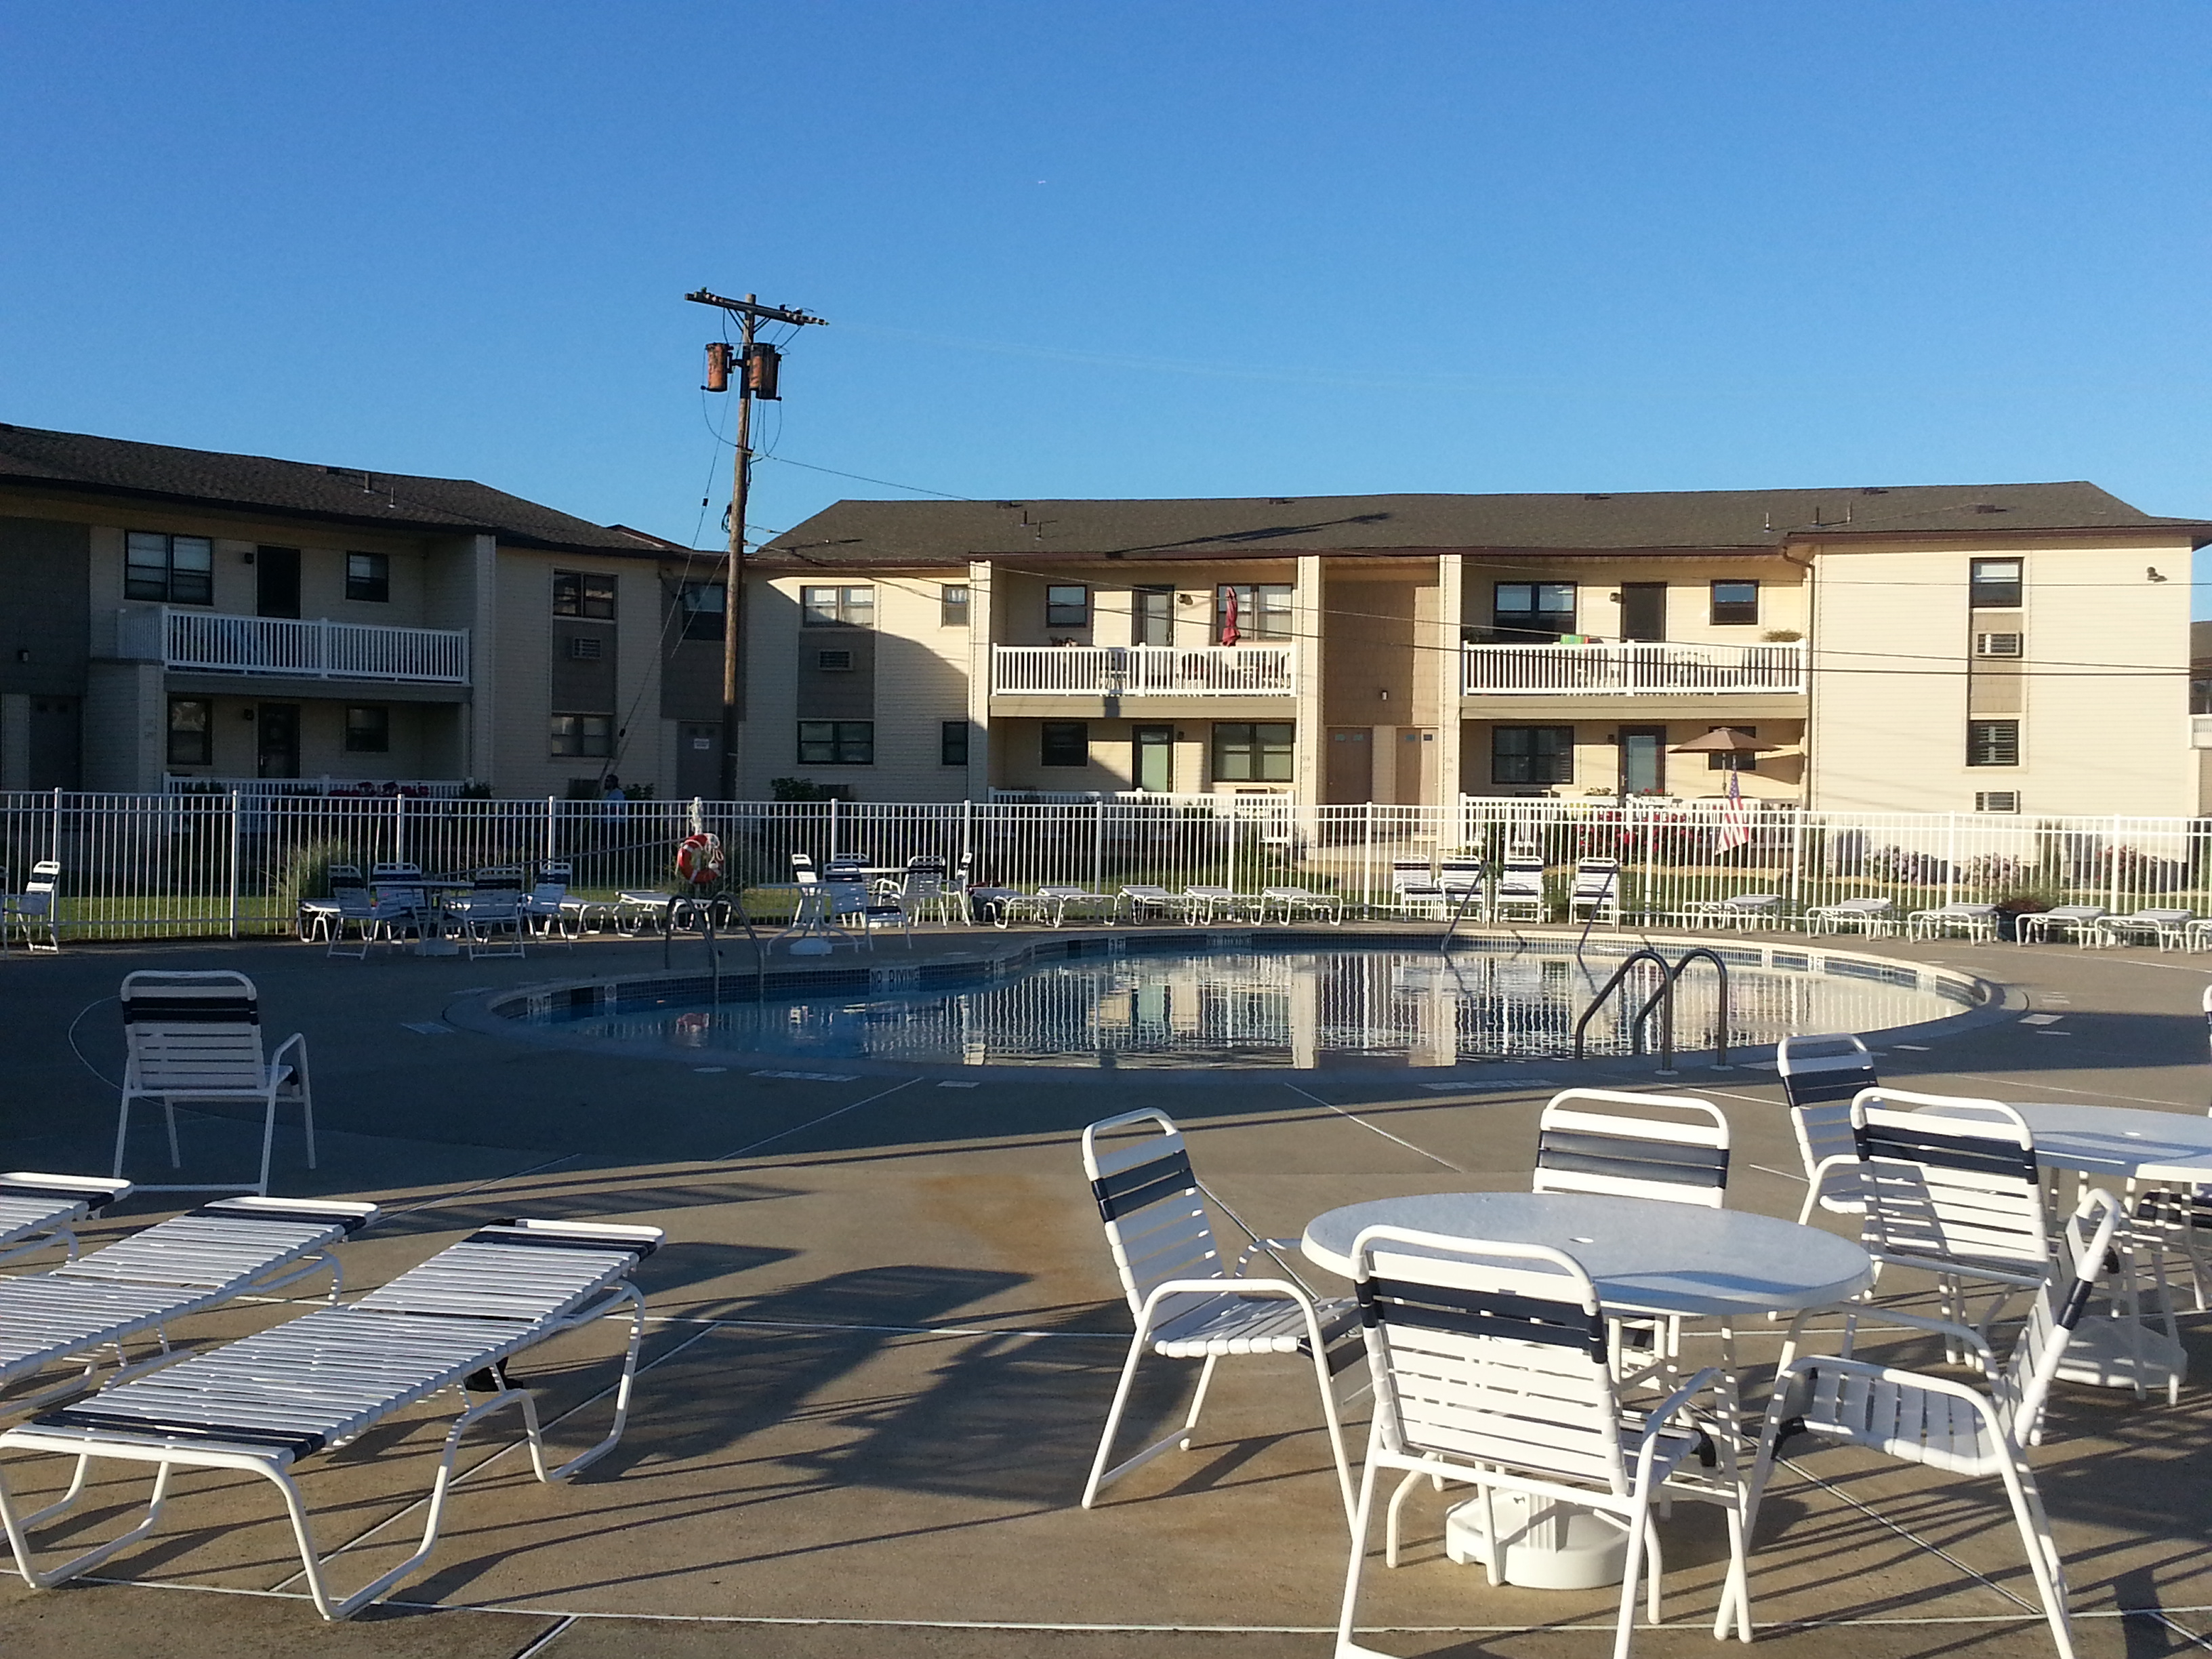 The Wharfside Manor community pool overlooks the river with a barbecue area next to it.